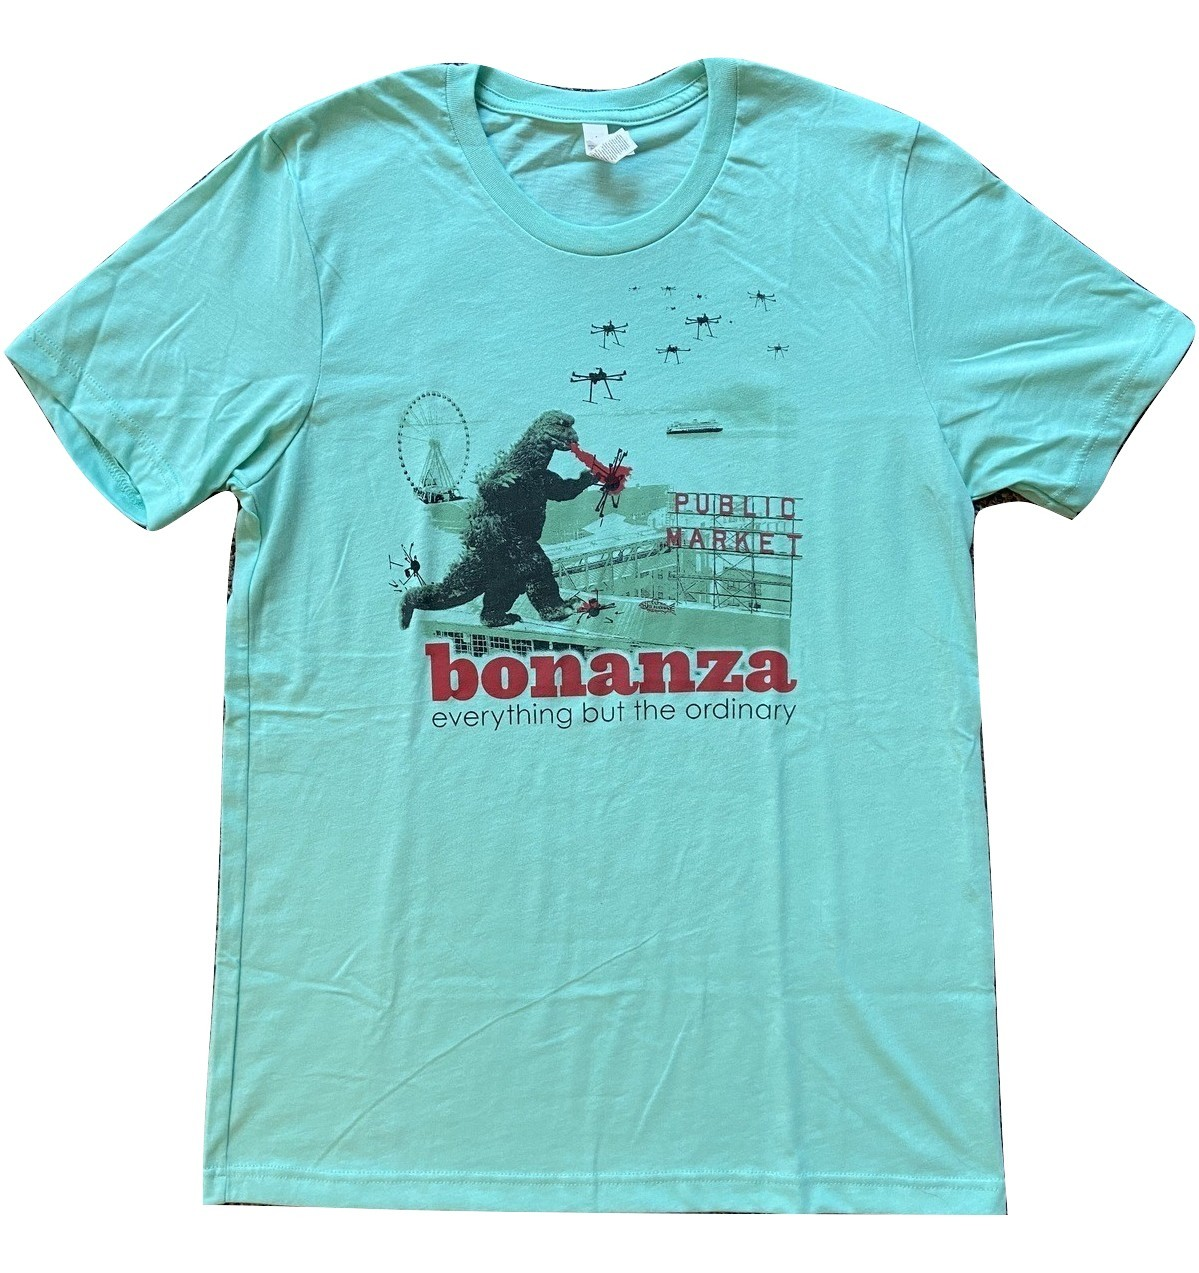 "Primary image for Bonanza ""Bonzilla Drone Attack"" T-Shirt, Blue-Green"